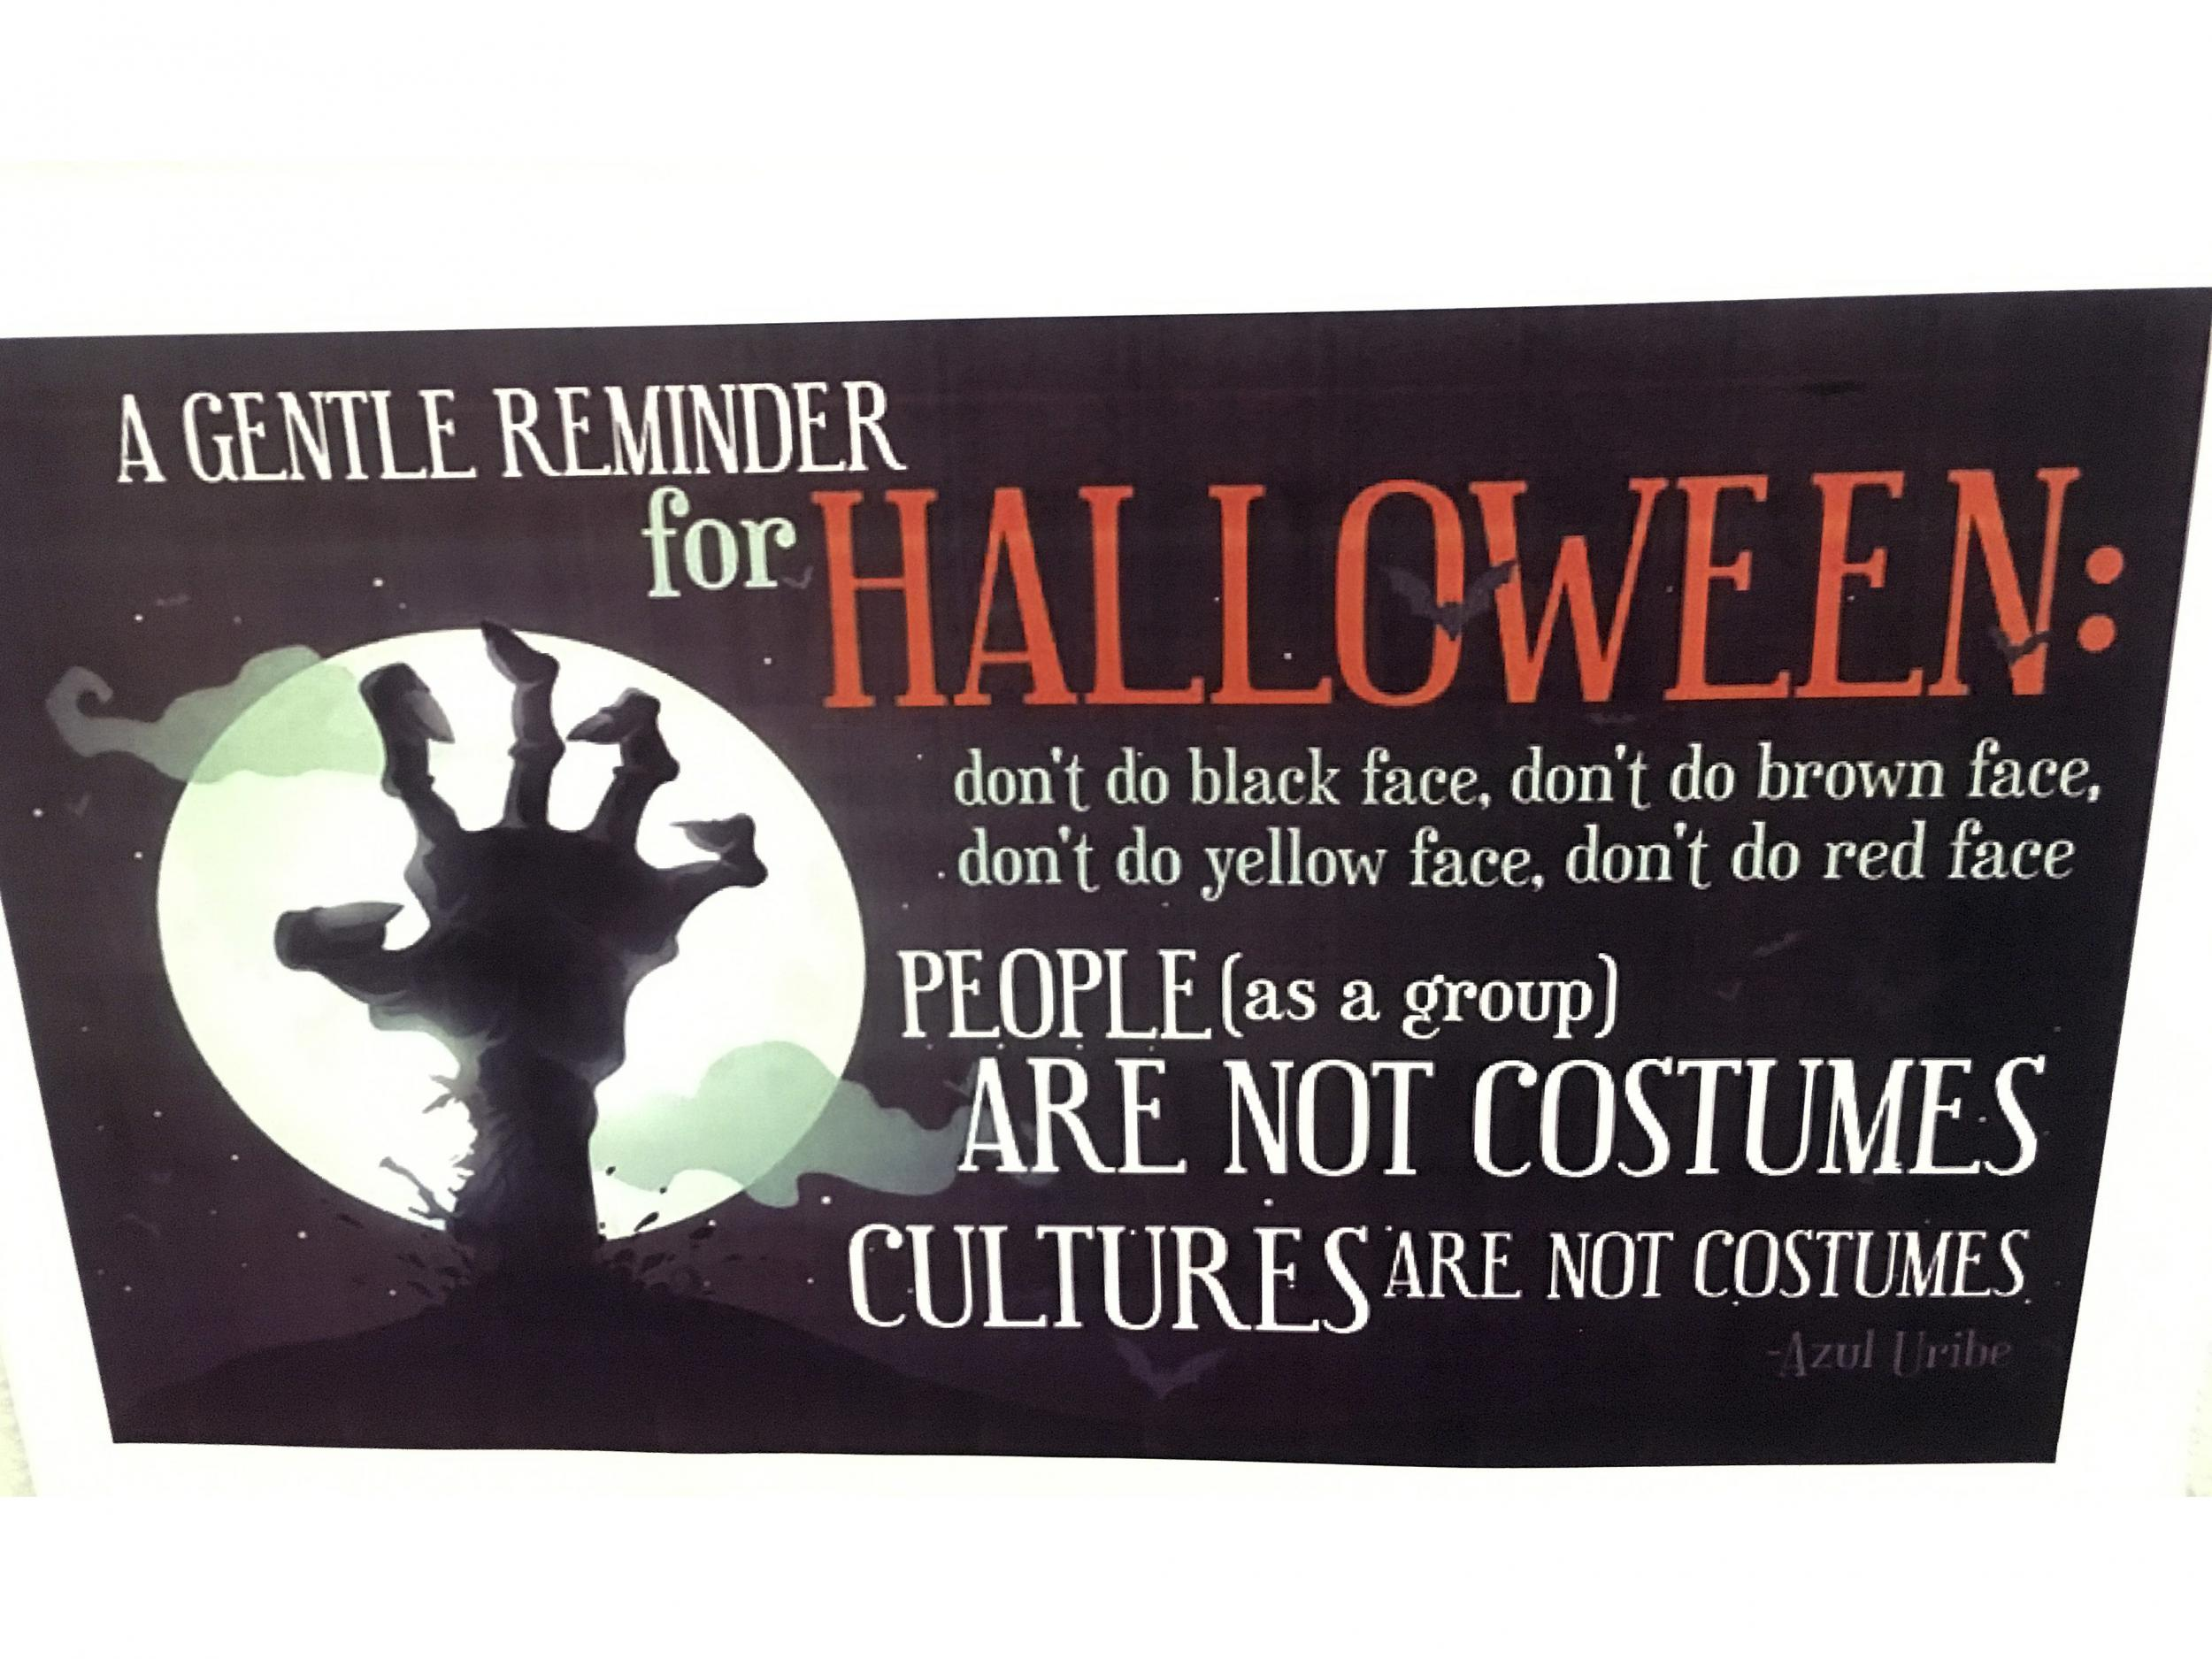 halloween: us universities warn students against culturally